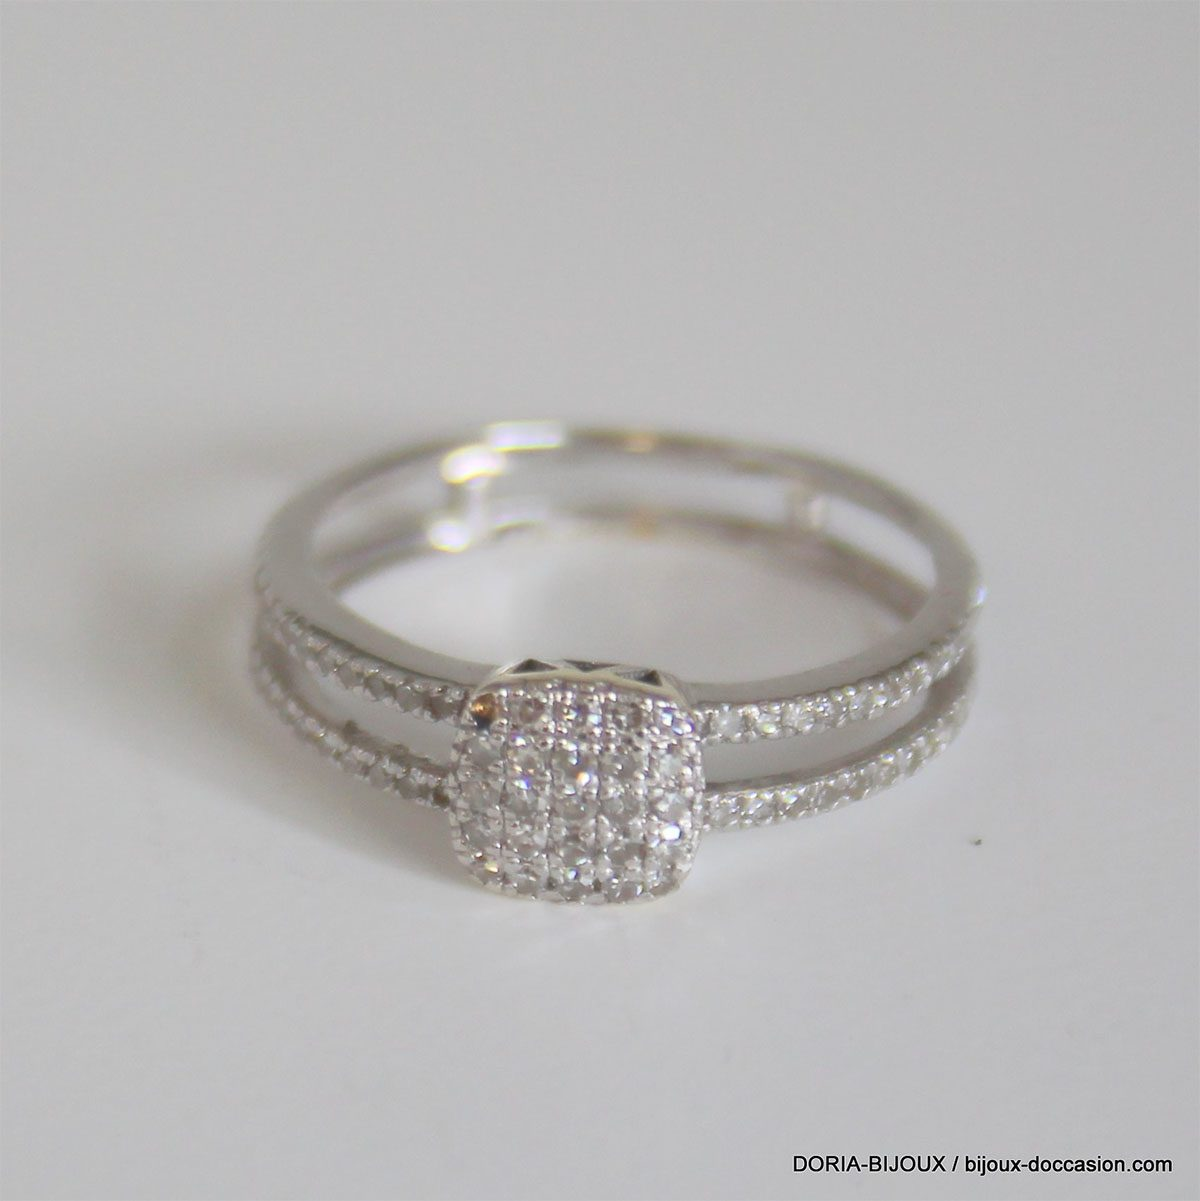 Bague Or Gris 18k 750 Pavage Diamants- 50